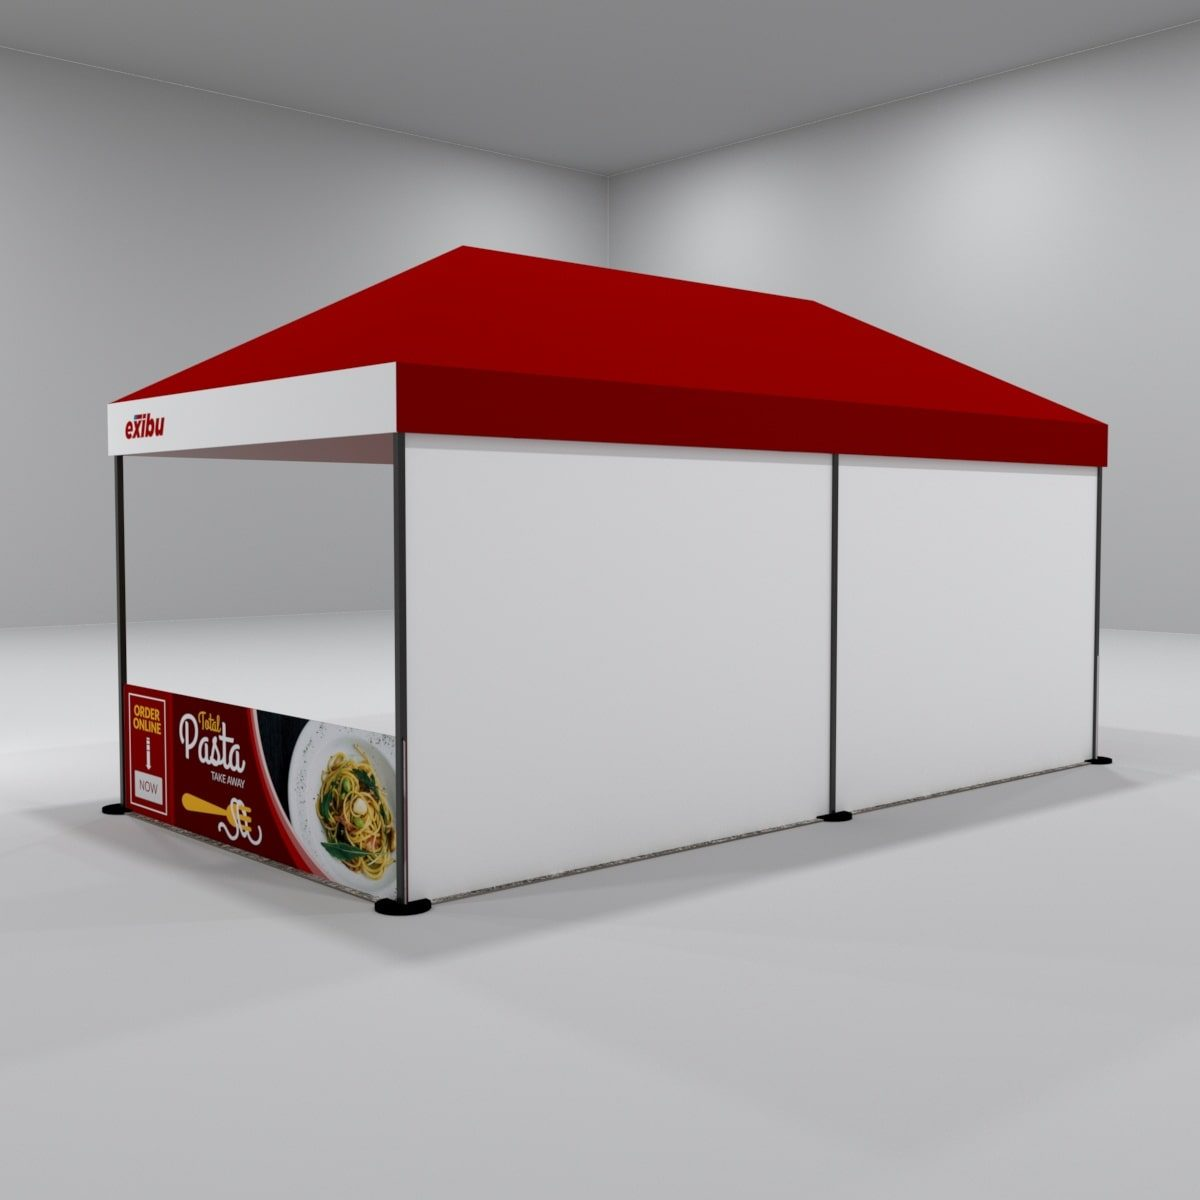 Kit 6 – 3X6 M Gazebo Tent With 1 Backdrop And 2 Side Halfwalls